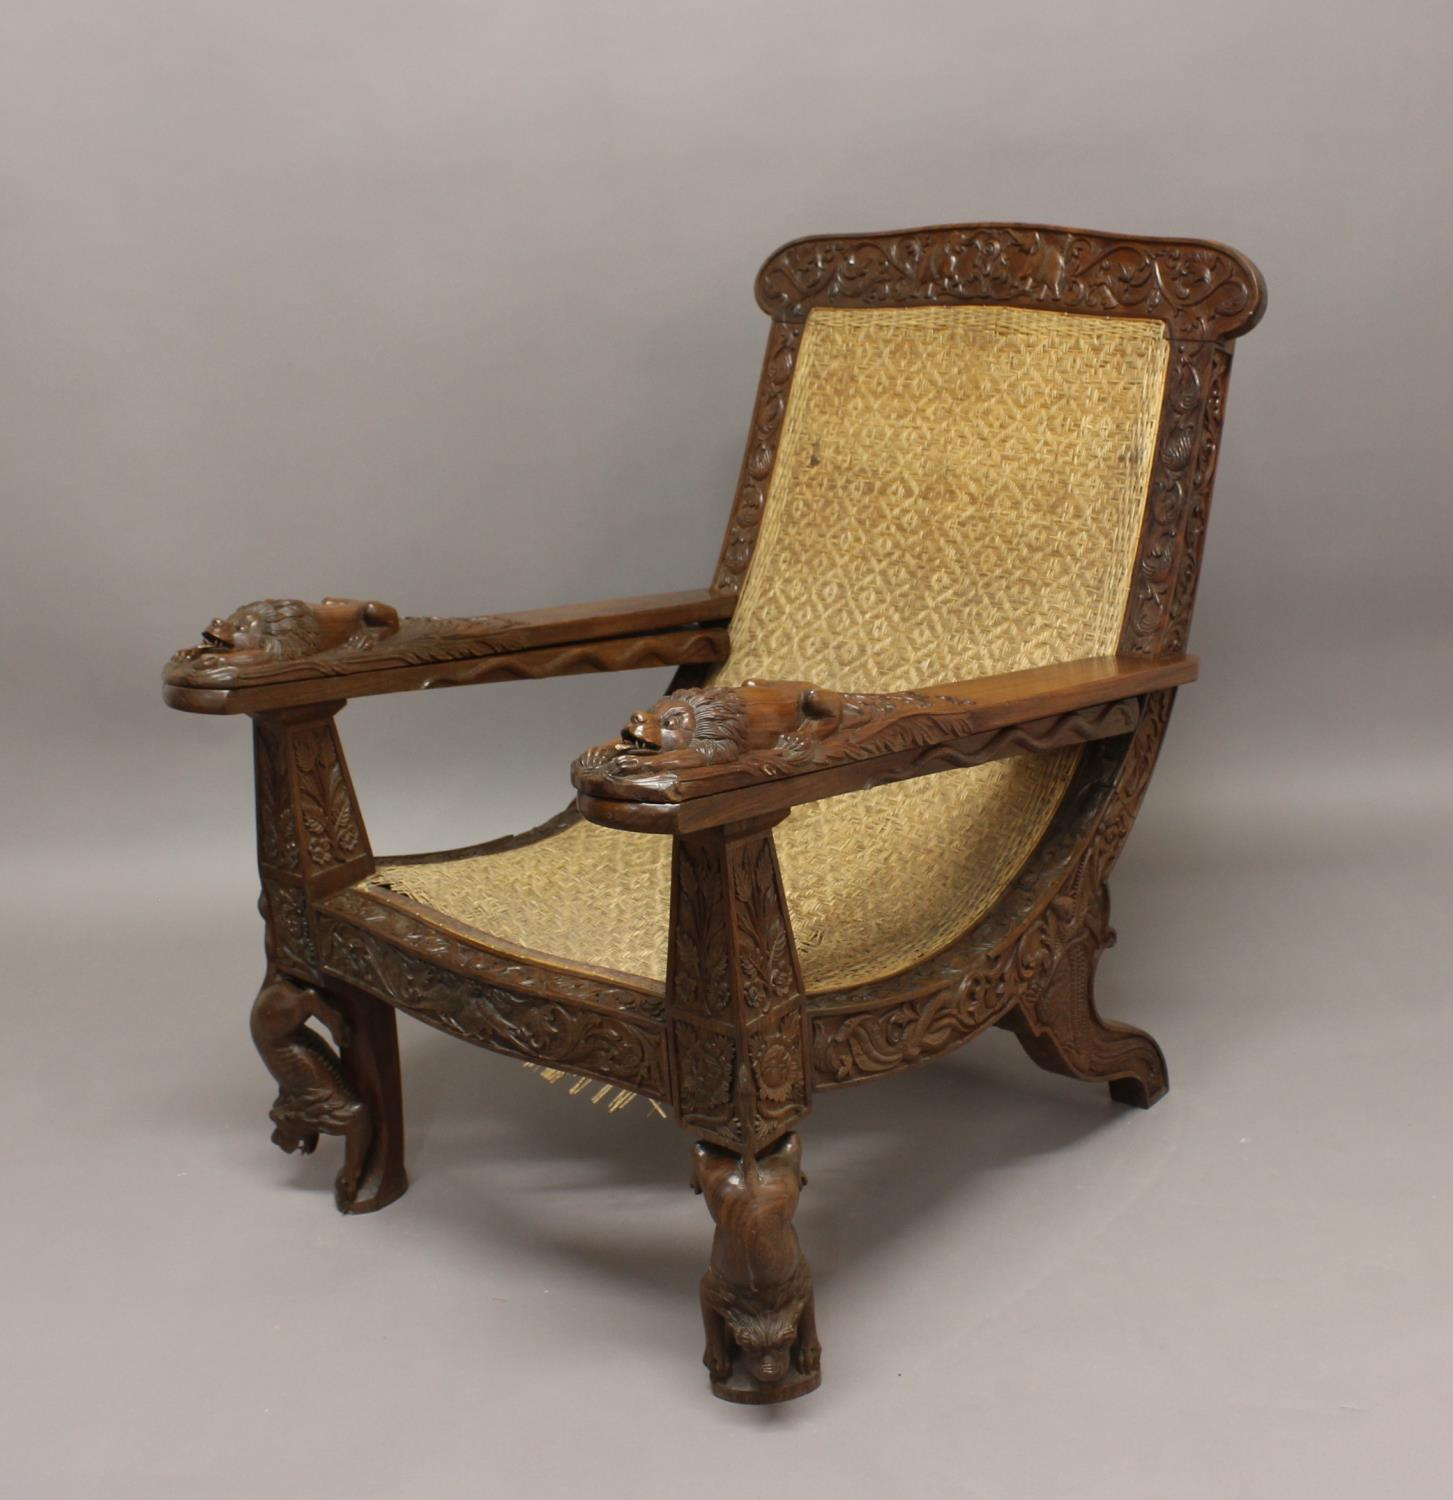 A LATE 19TH/EARLY 20TH CENTURY TEAK PLANTERS CHAIR. A teak planters chair with elaborately carved